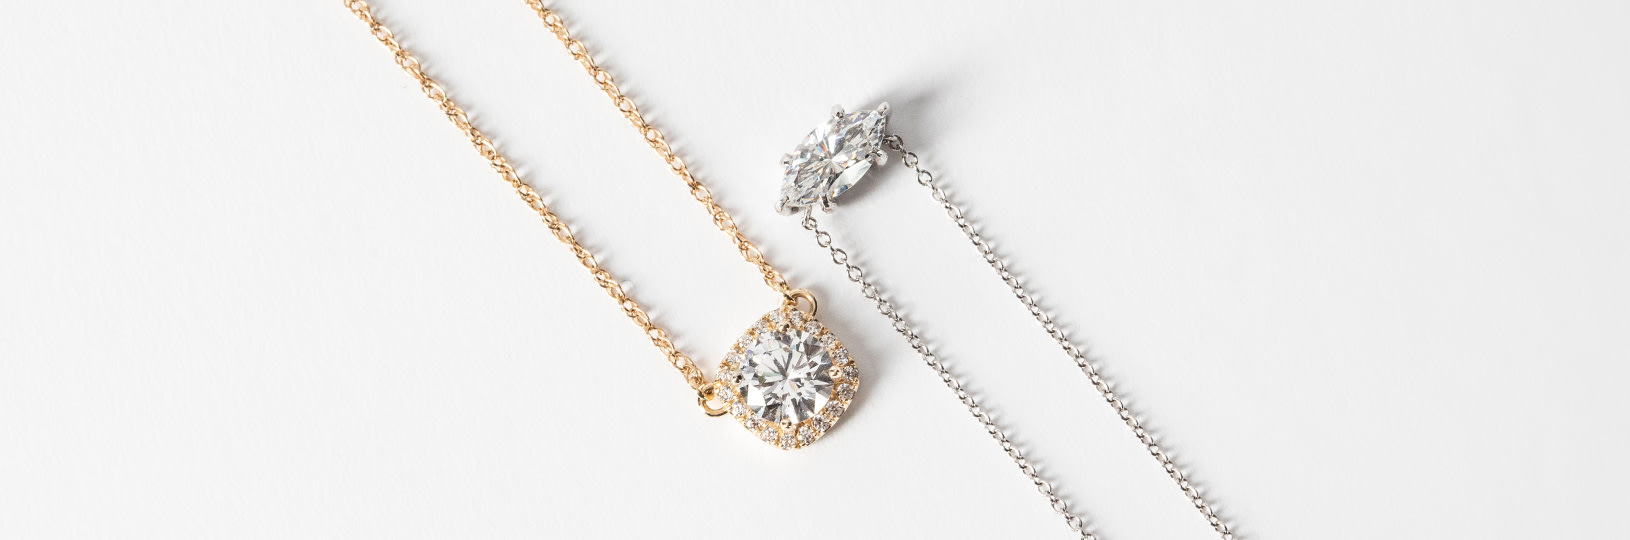 Two necklaces, one in yellow gold, the other in white gold